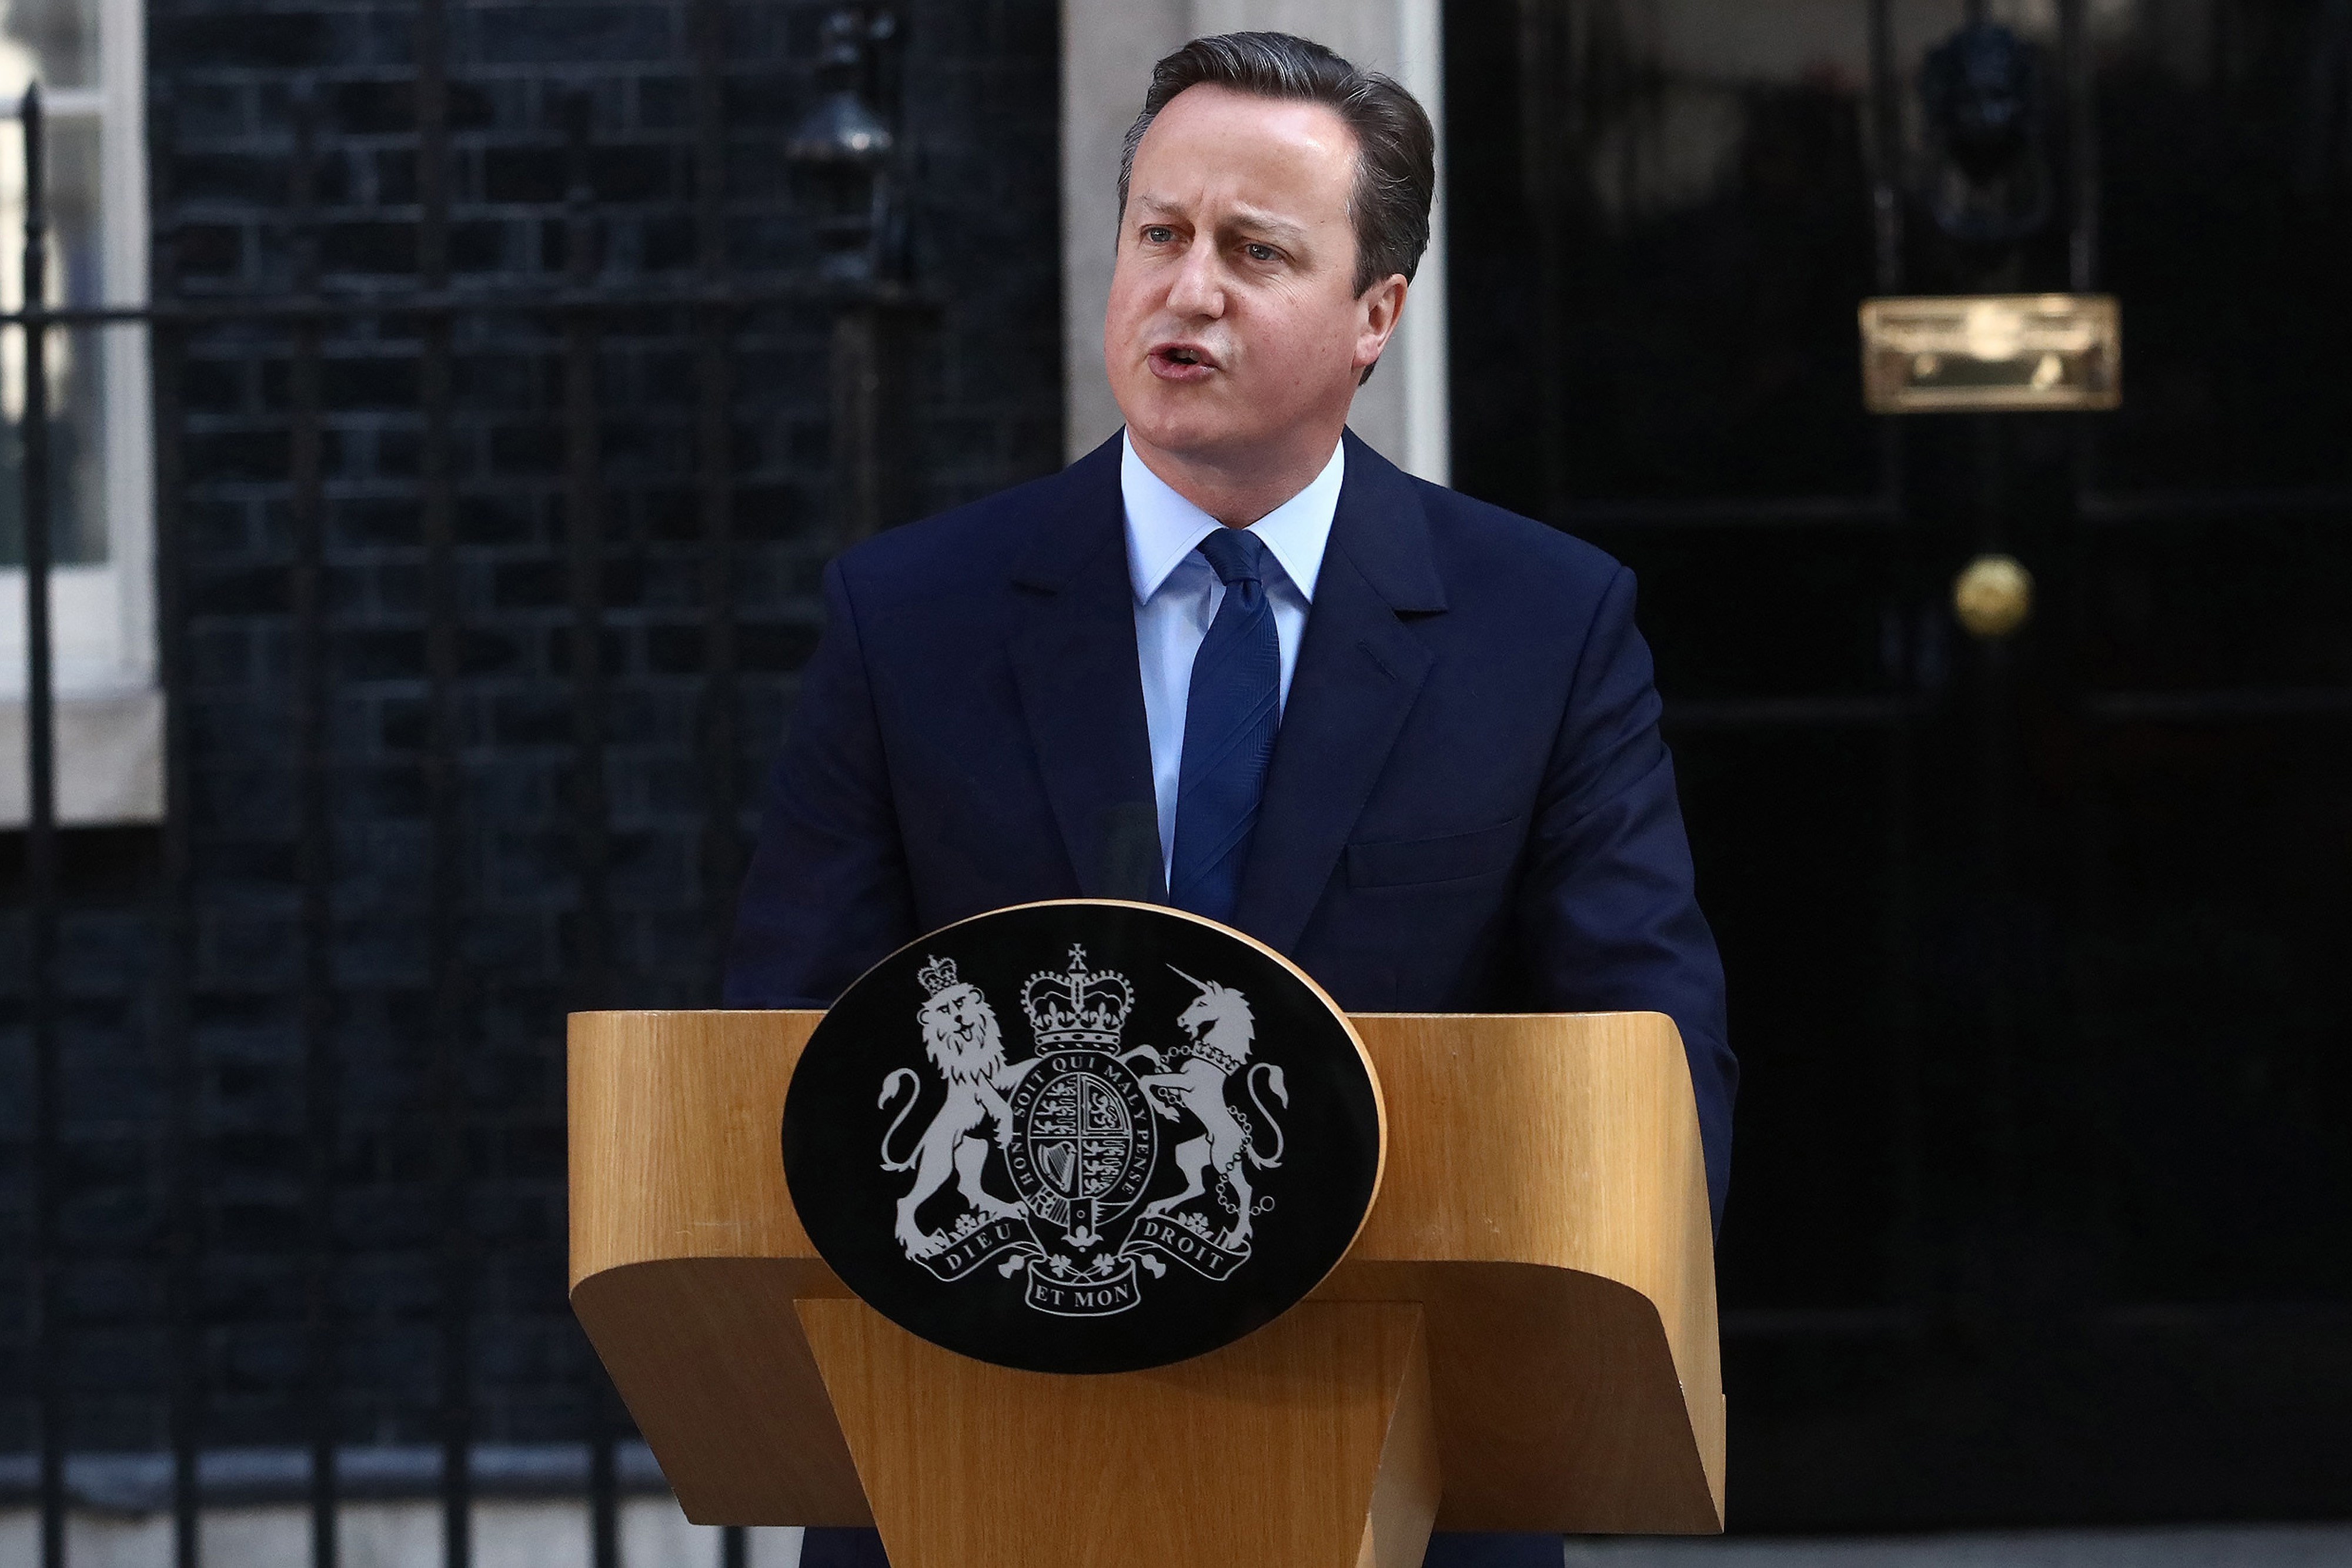 David Cameron, U.K. prime minister and leader of the Conservative Party, makes his resignation speech in Downing Street following the European Union referendum membership vote results in London on Friday. (Bloomberg photo)